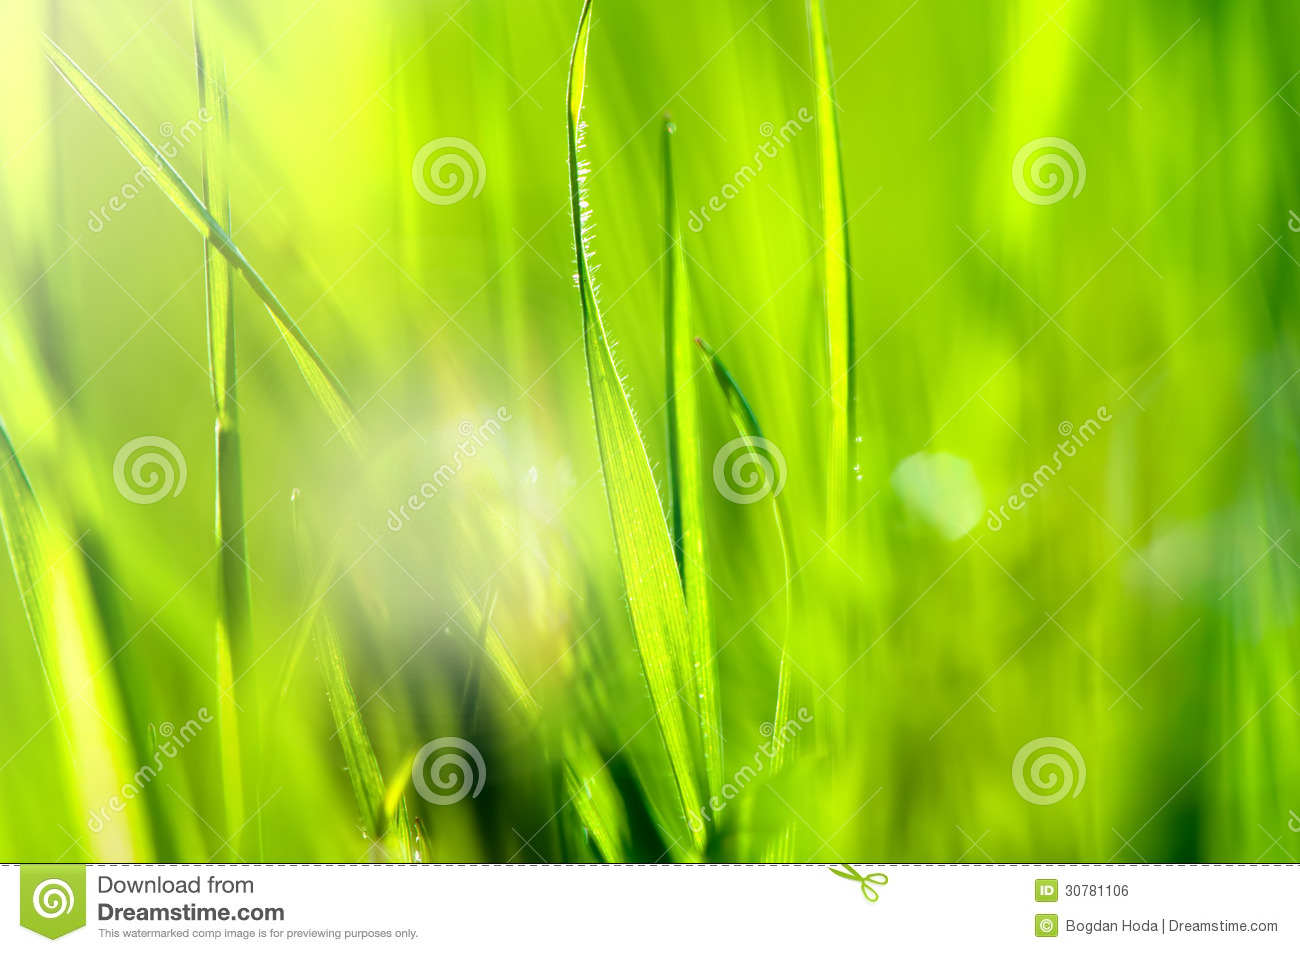 Spring and summer abstract nature background with grass and sun